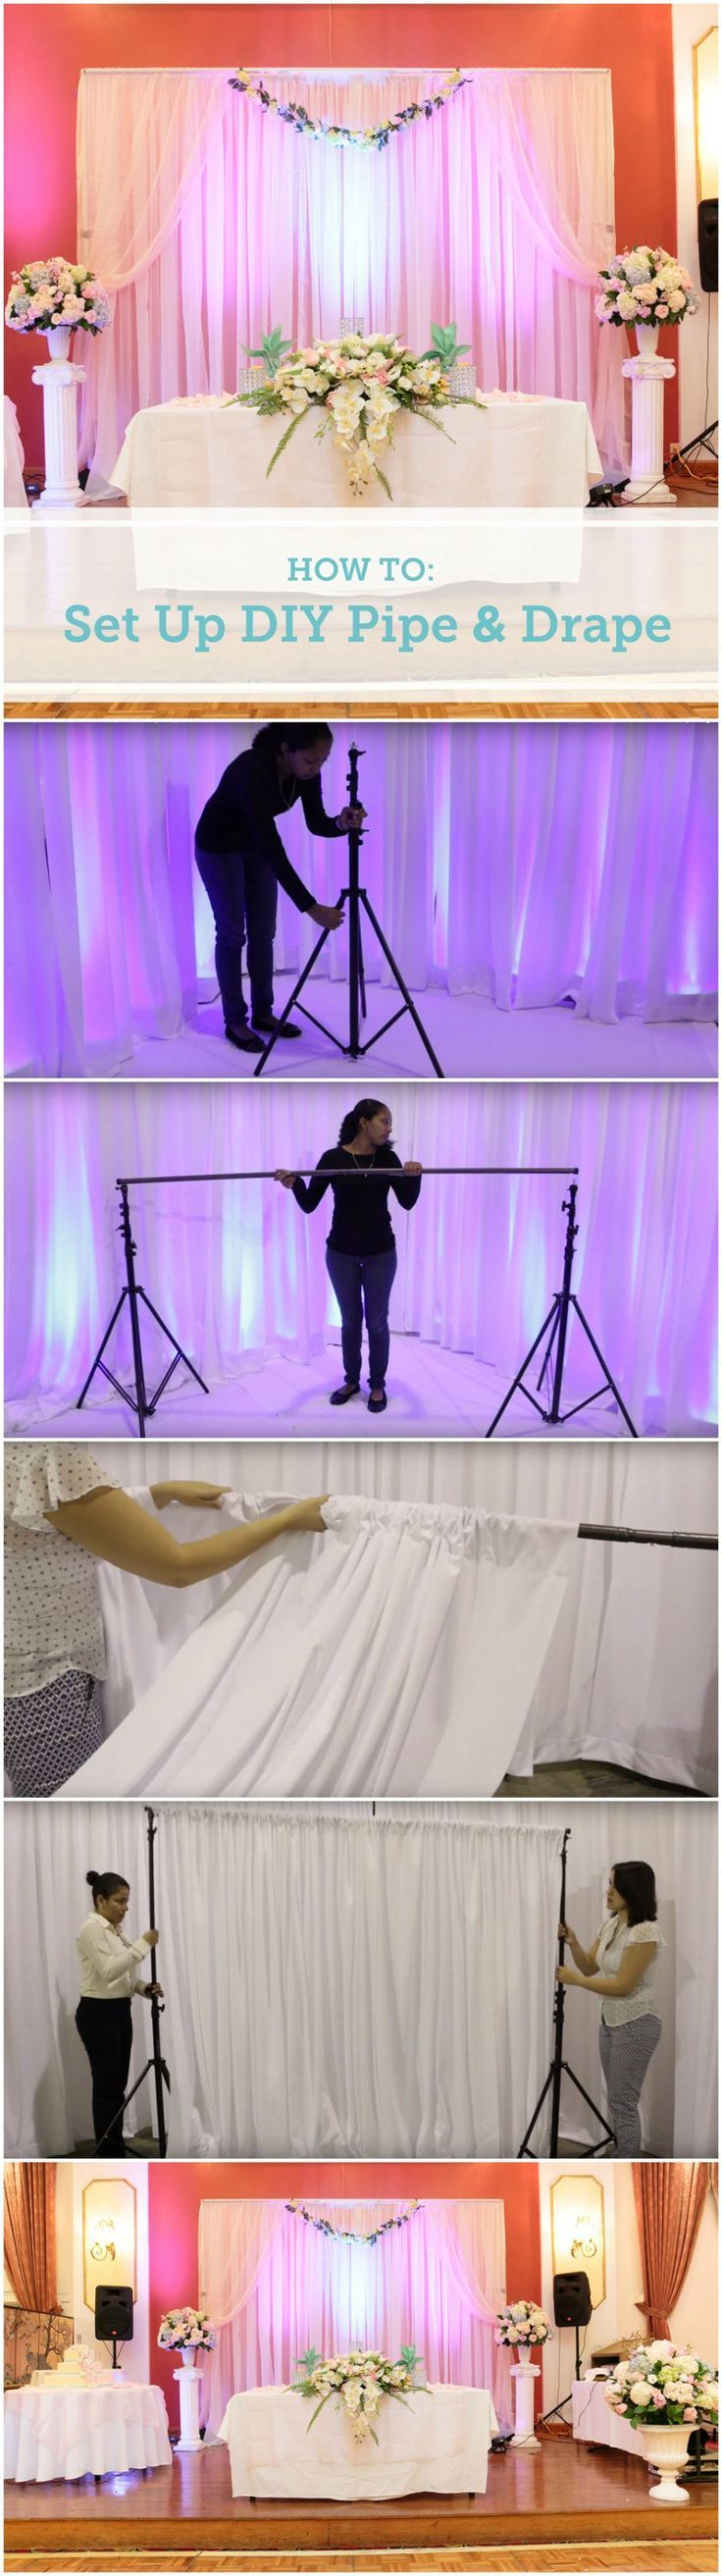 How to set up a diy wedding backdrop how to set up a diy wedding backdrop the budget savvy bride junglespirit Choice Image